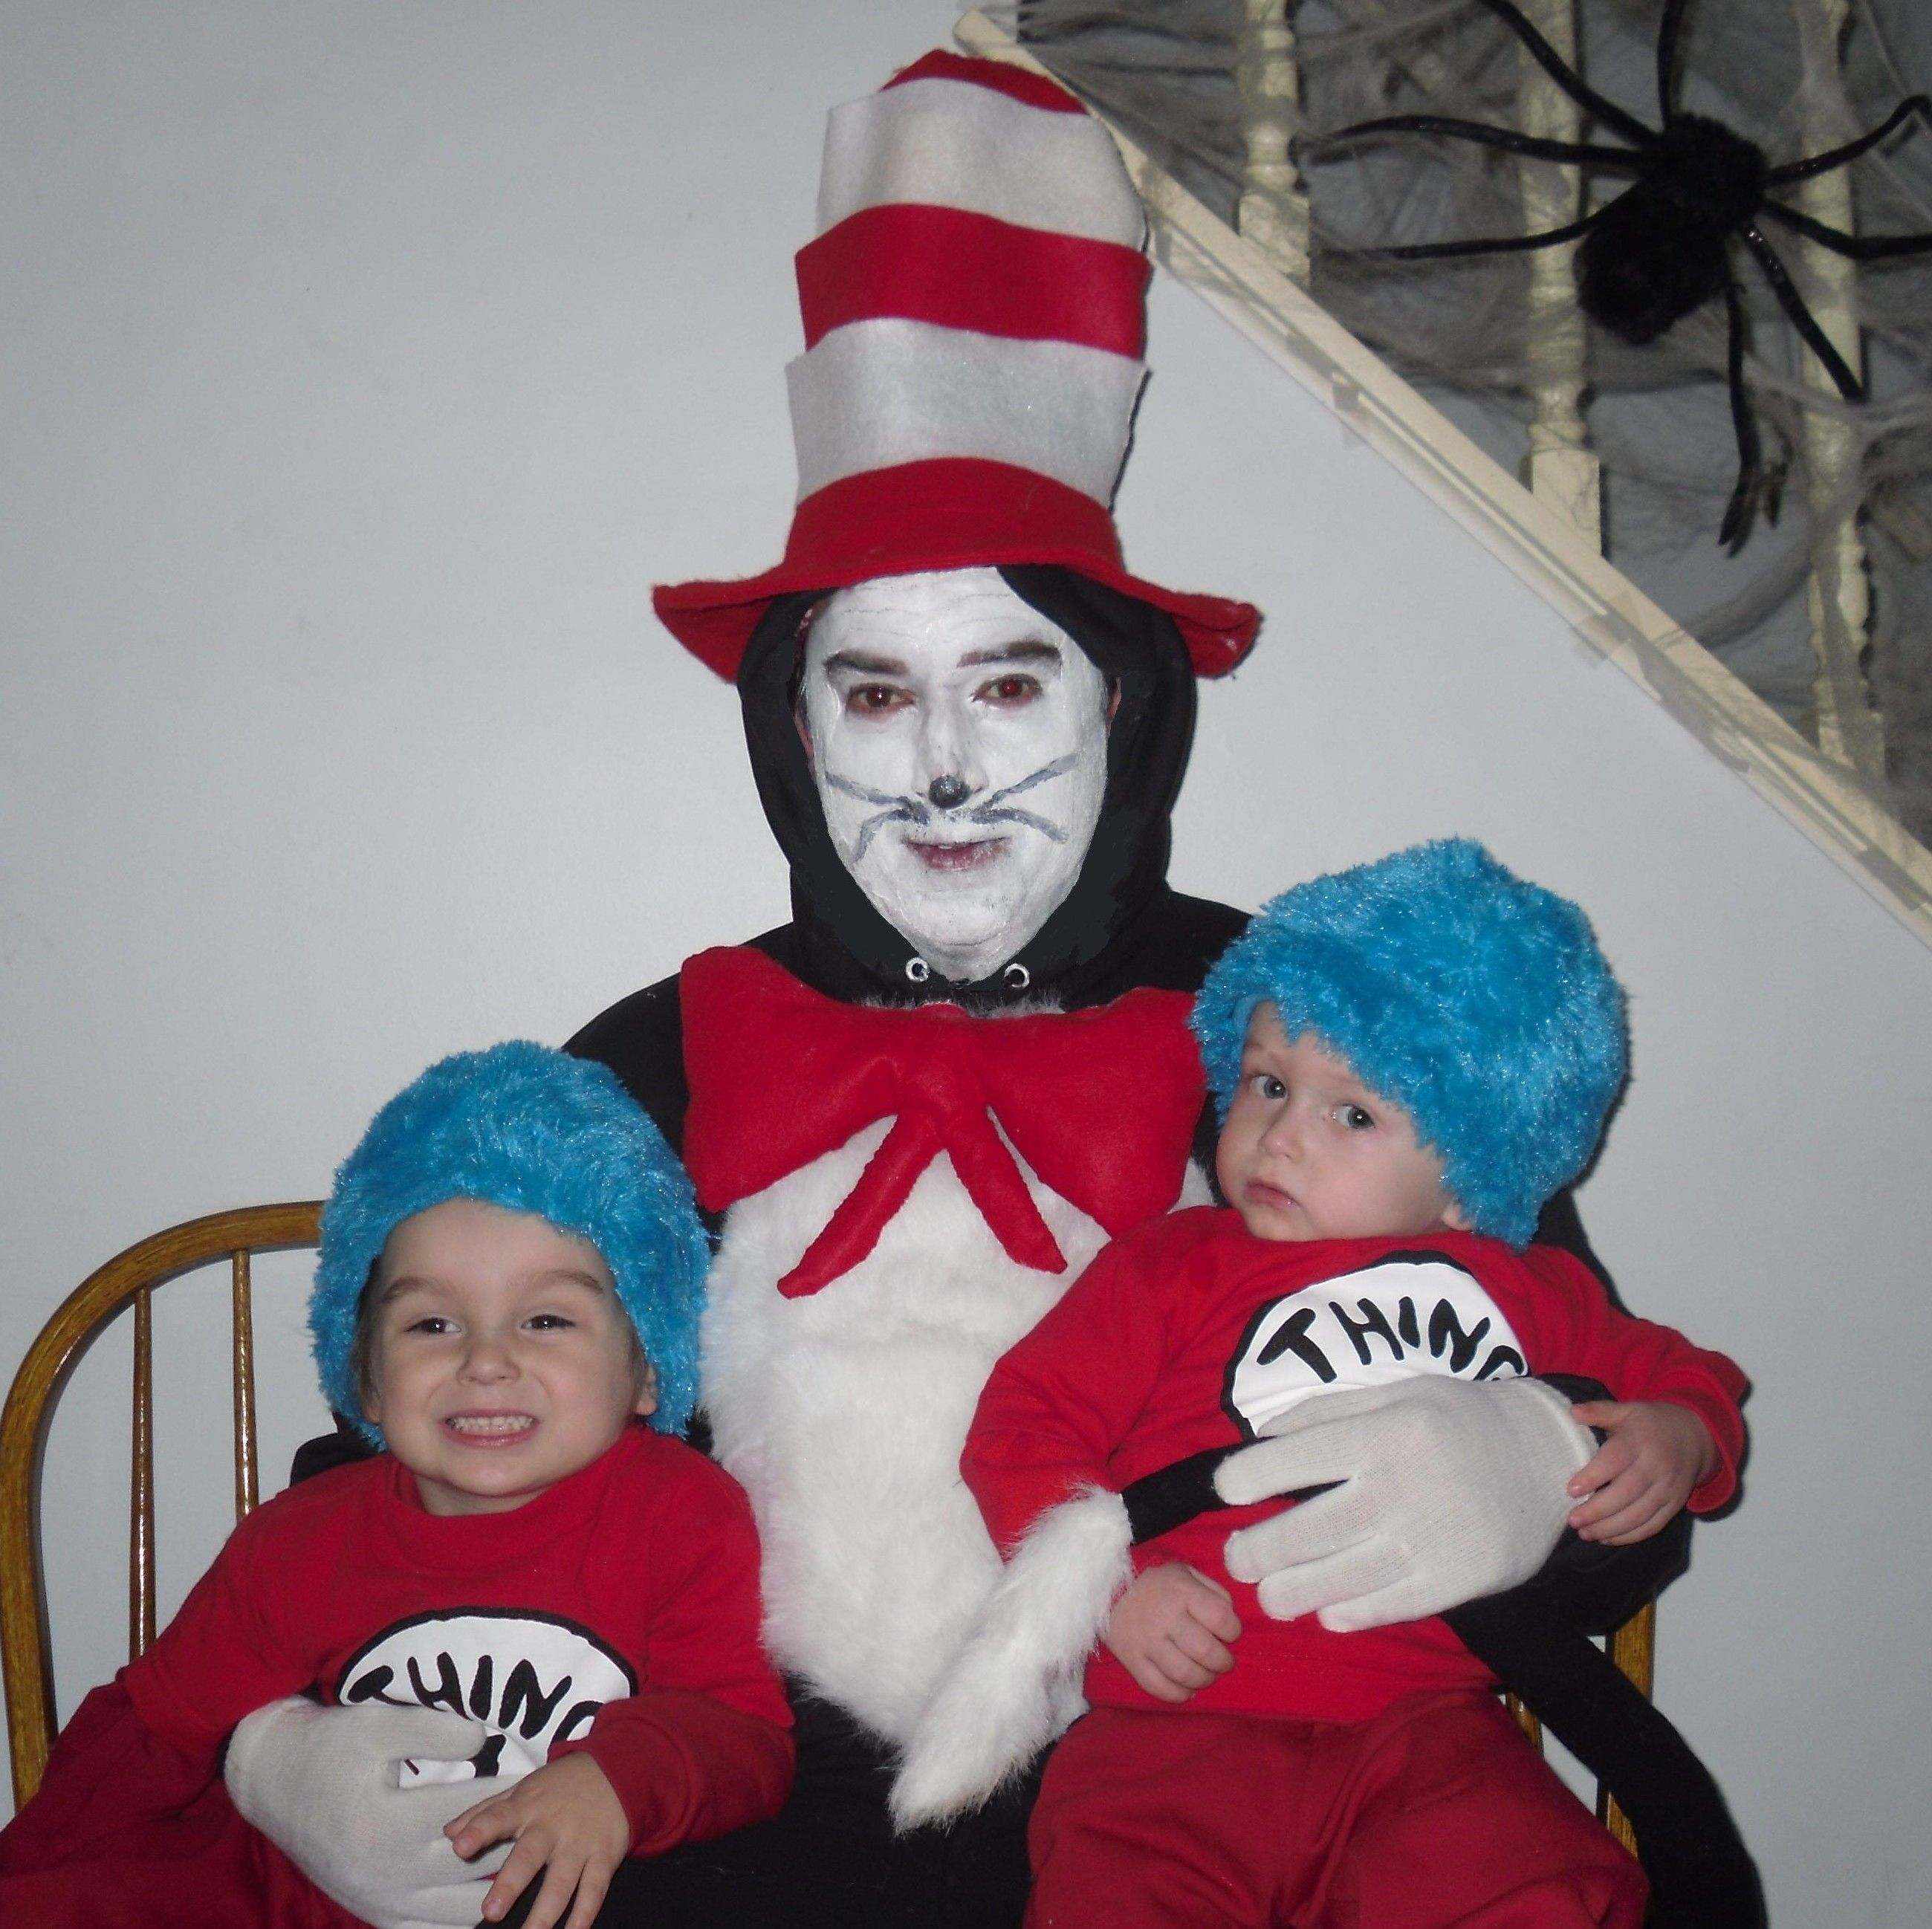 cat in the hat and thing 1 and thing 2 halloween costume idea i sewed - Cat In The Hat Halloween Costume Ideas